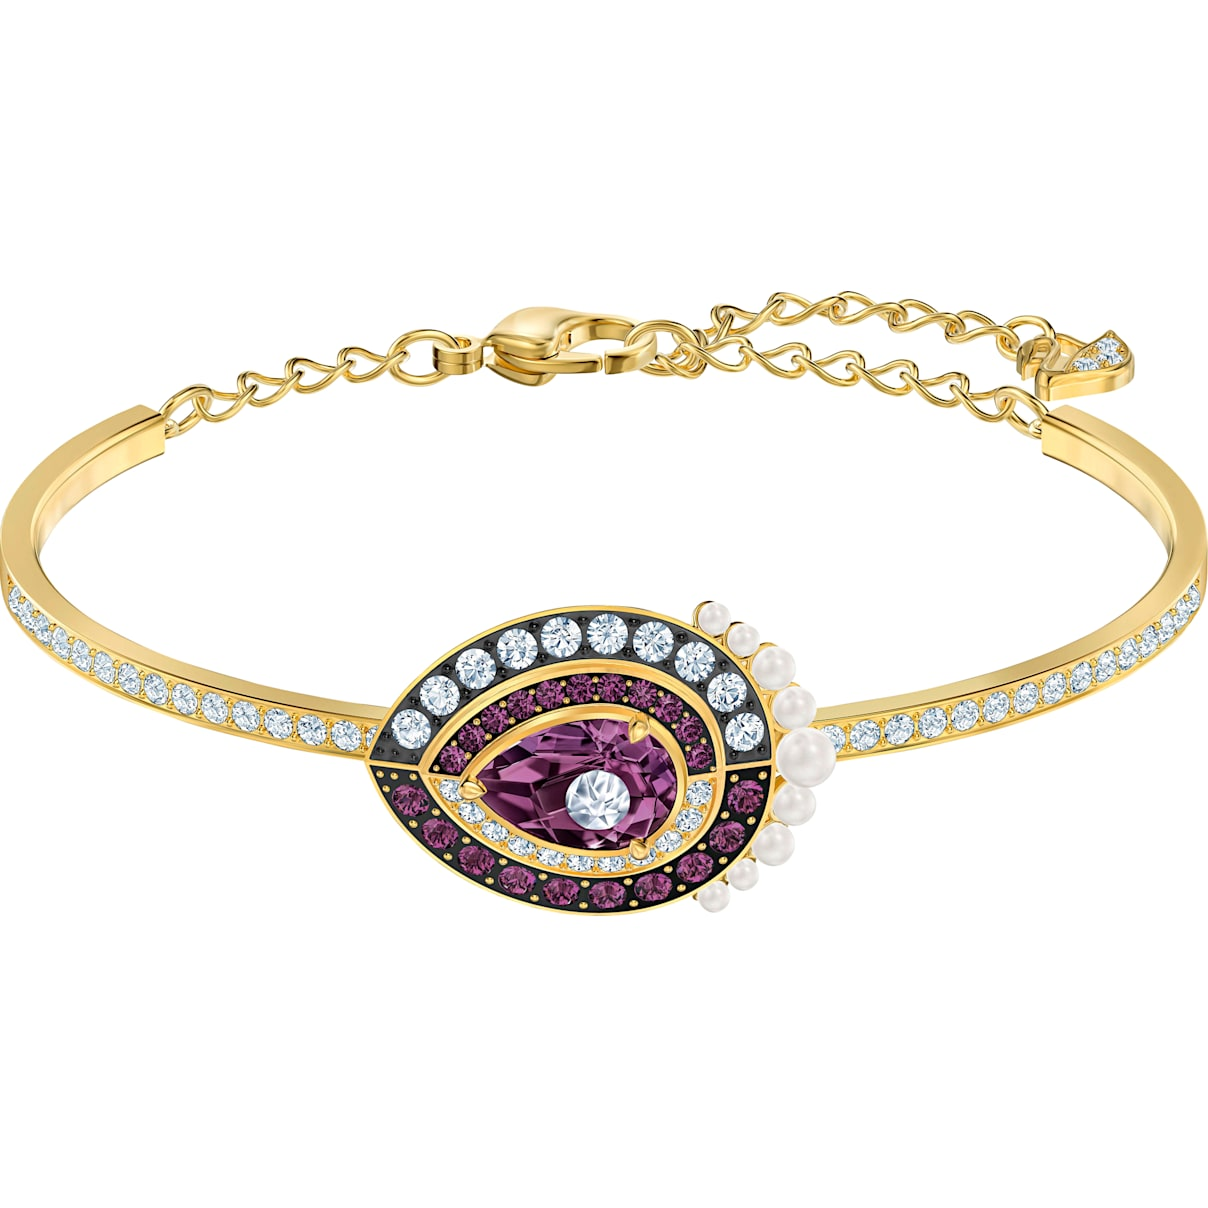 Swarovski Black Baroque Bangle, Multi-colored, Gold-tone plated